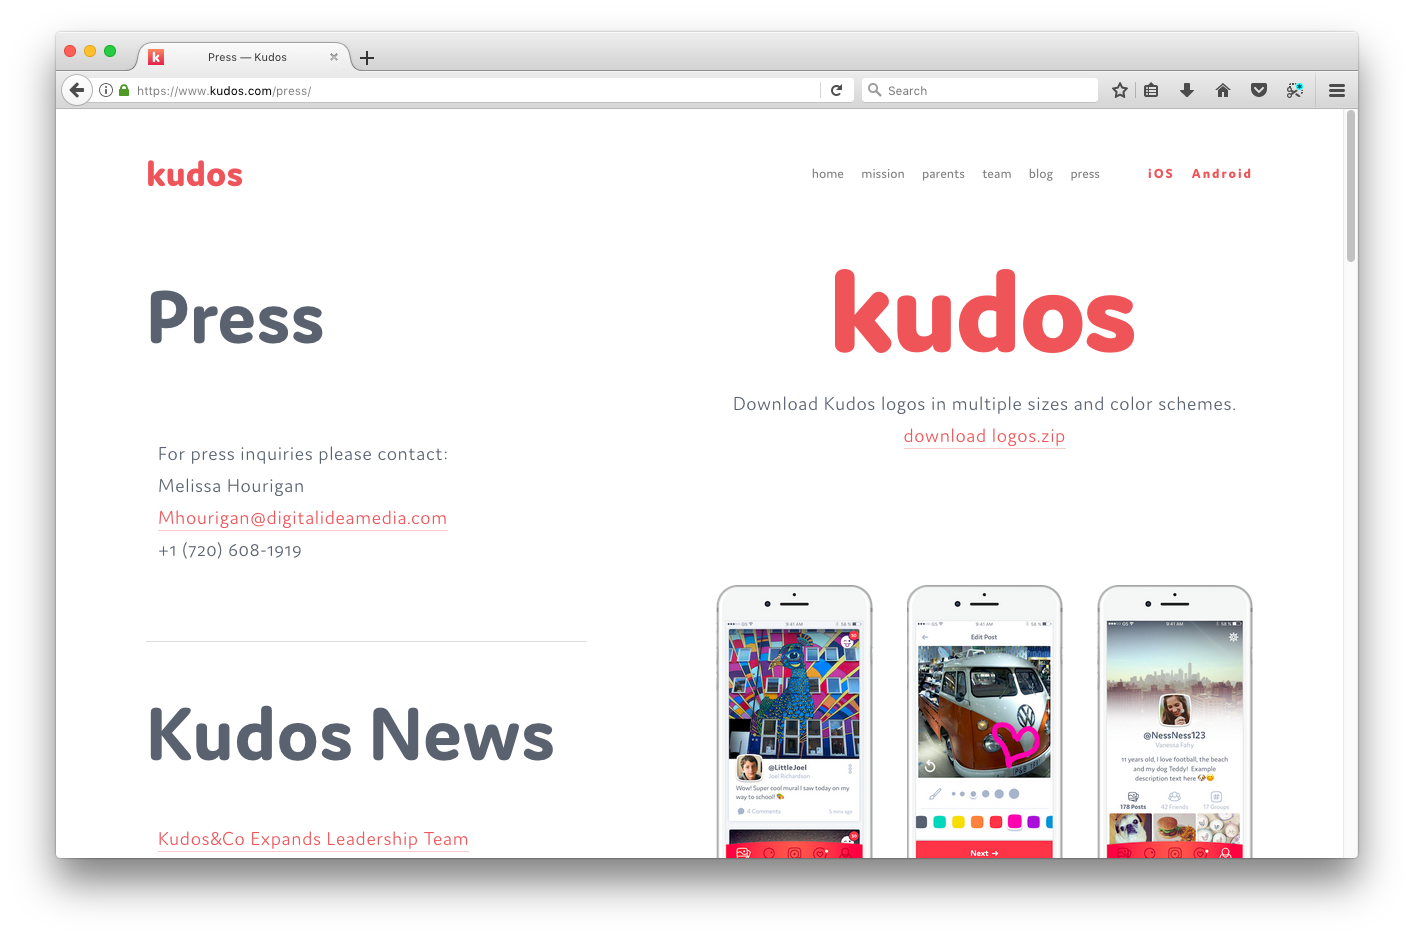 Kudos - Fonts In Use